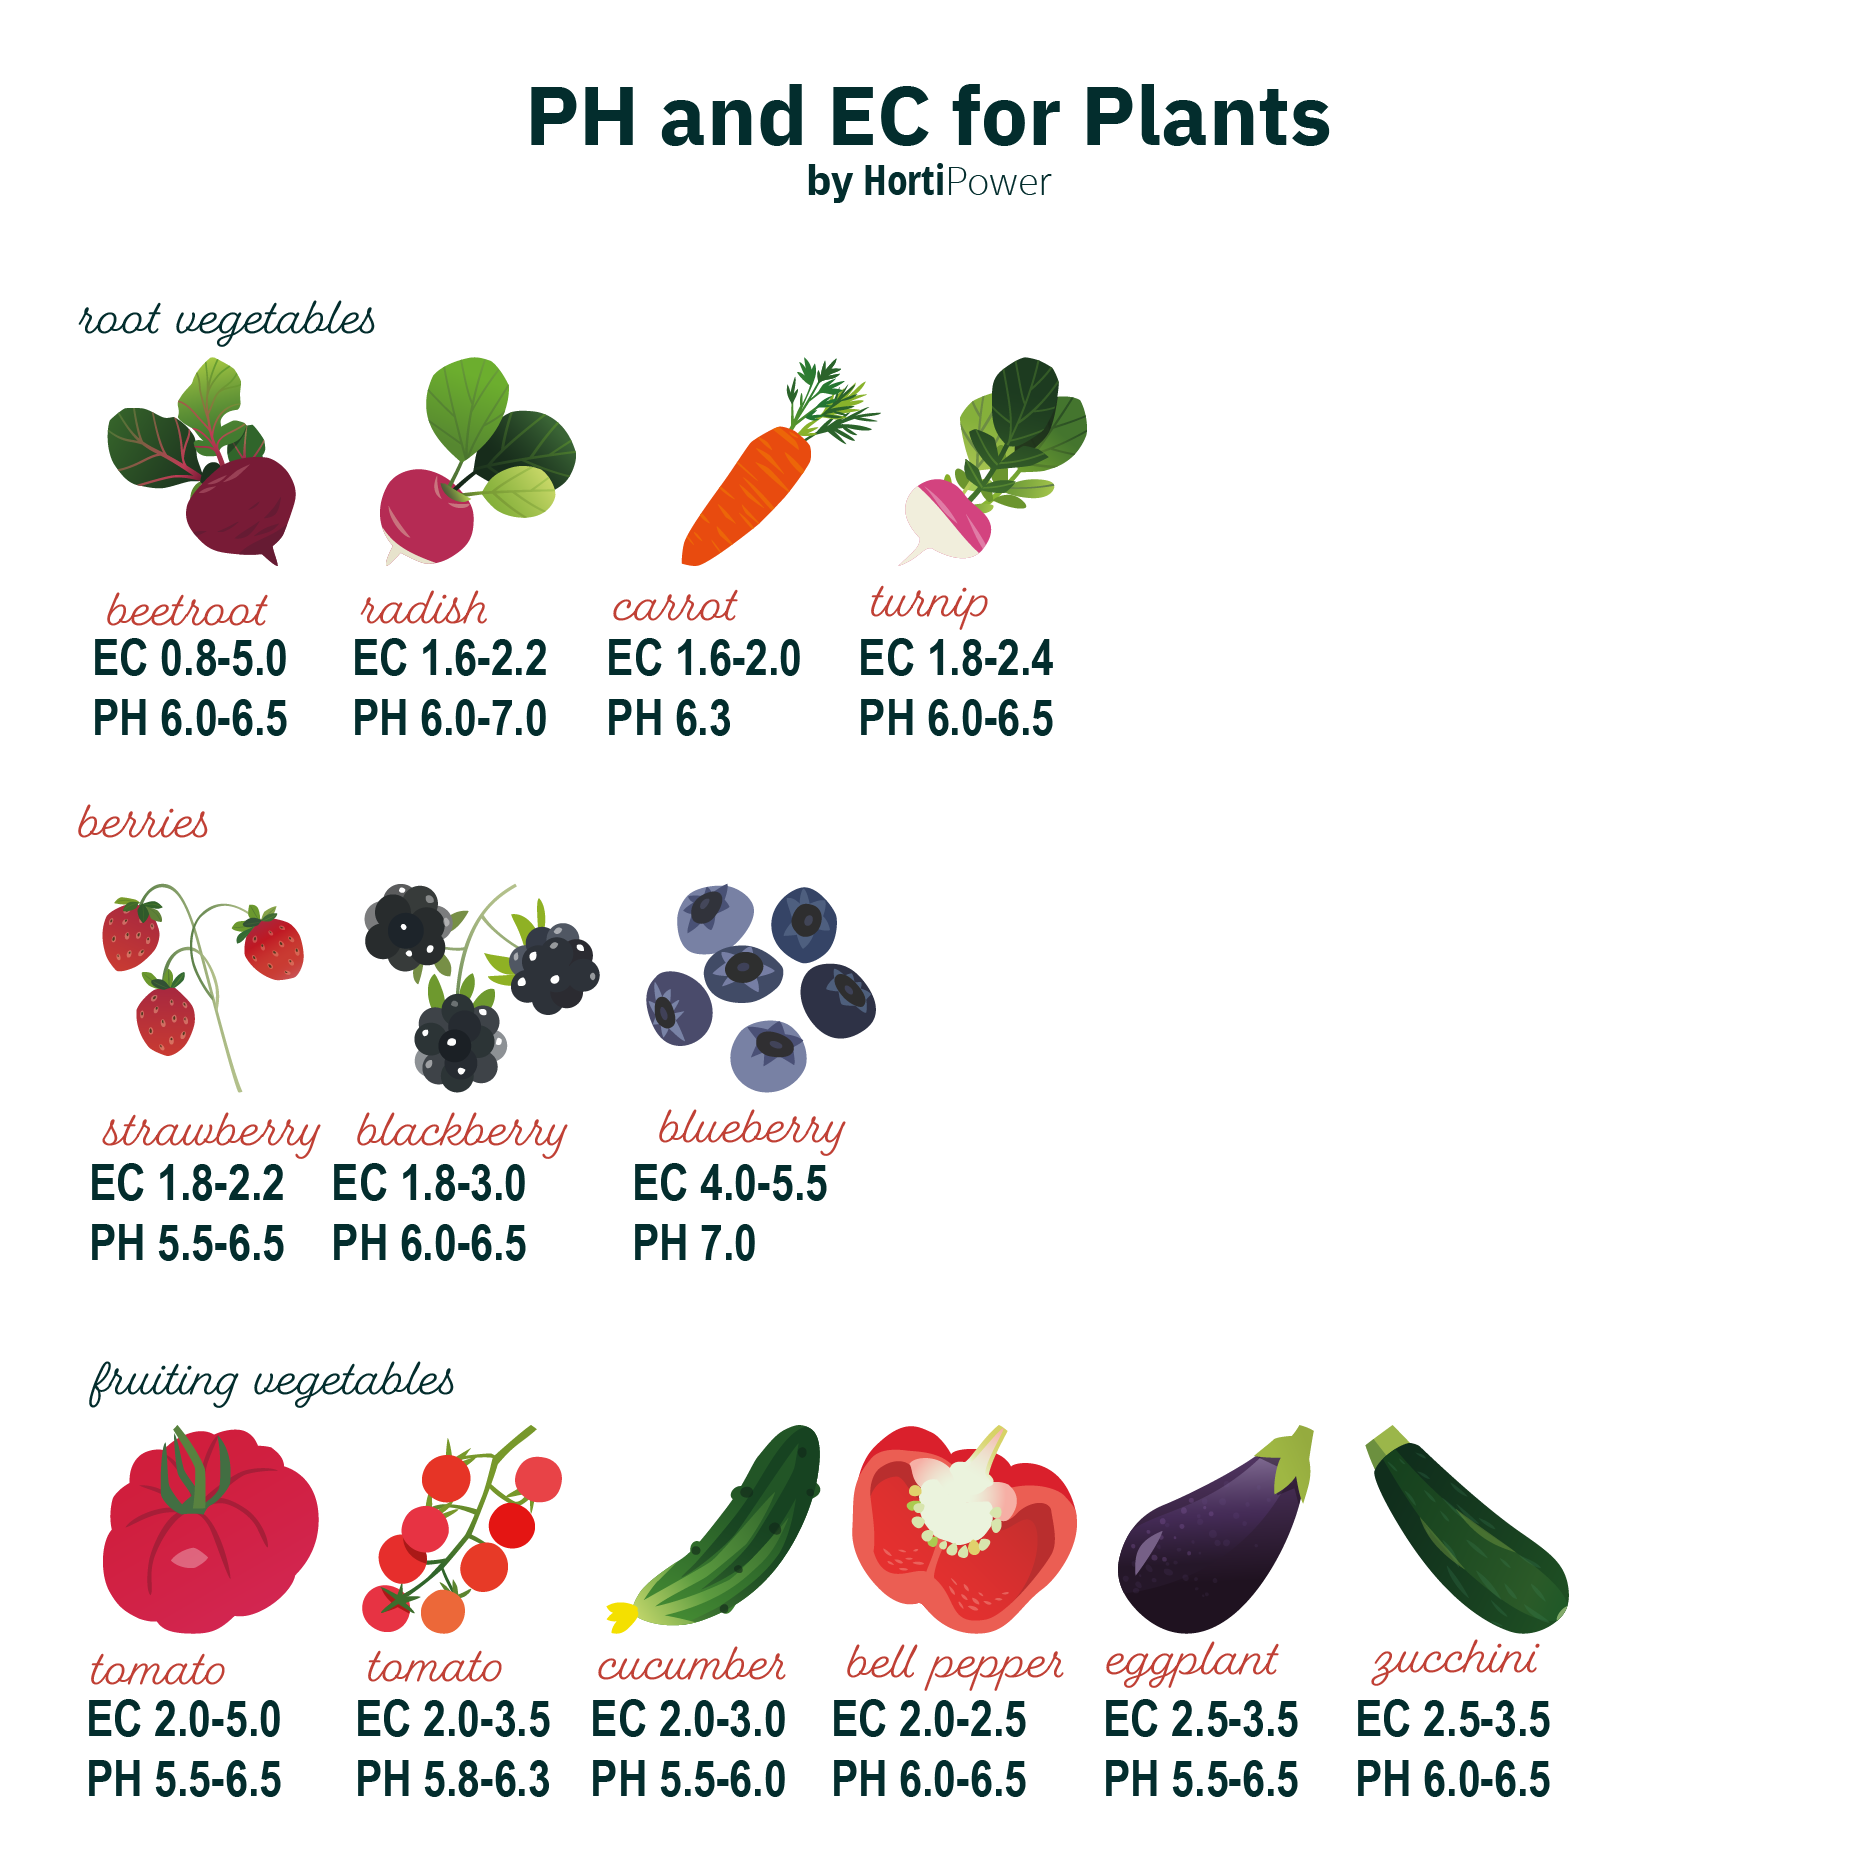 ph and ec for plants rooting crops, berries, vegetable fruiting crops